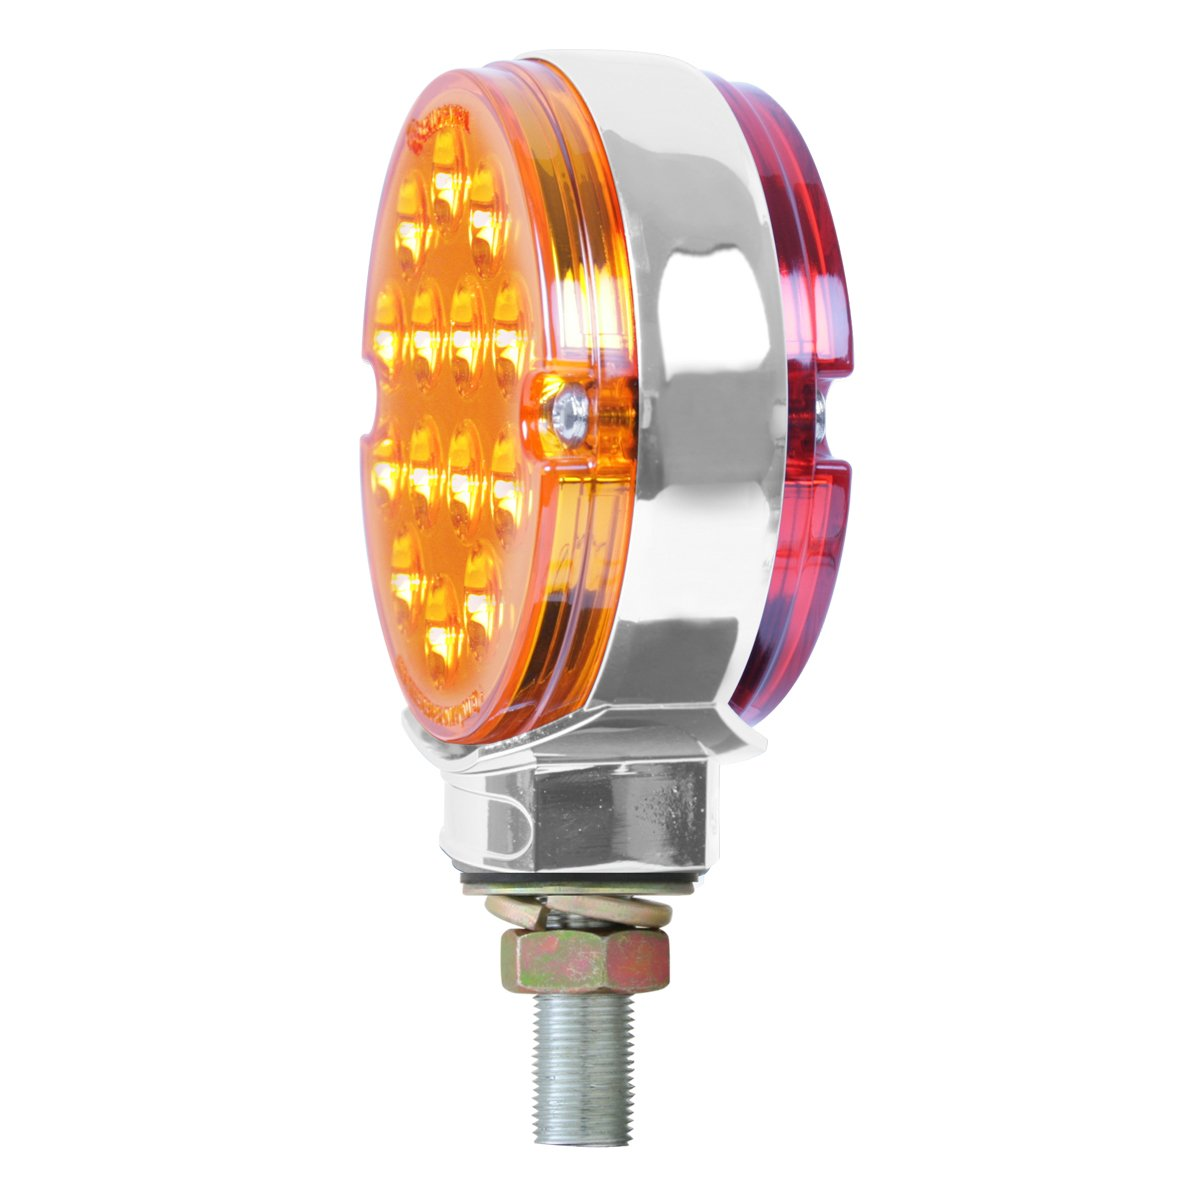 Grand General 75190 Amber/Red 3'' Pearl Double Faced 14 LED Light by Grand General